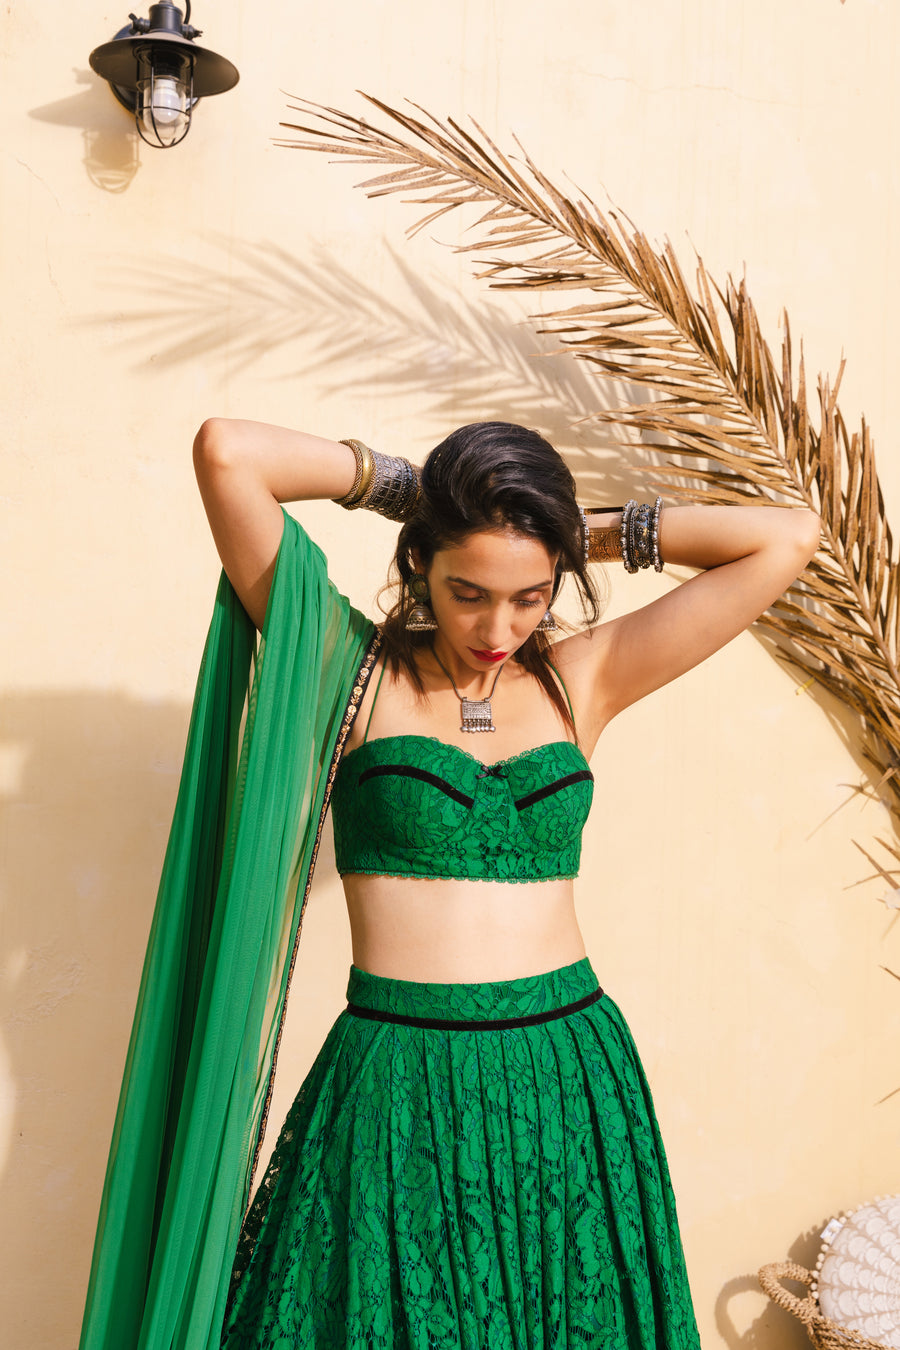 Vintage lace emerald crop and skirt set - WaliaJones